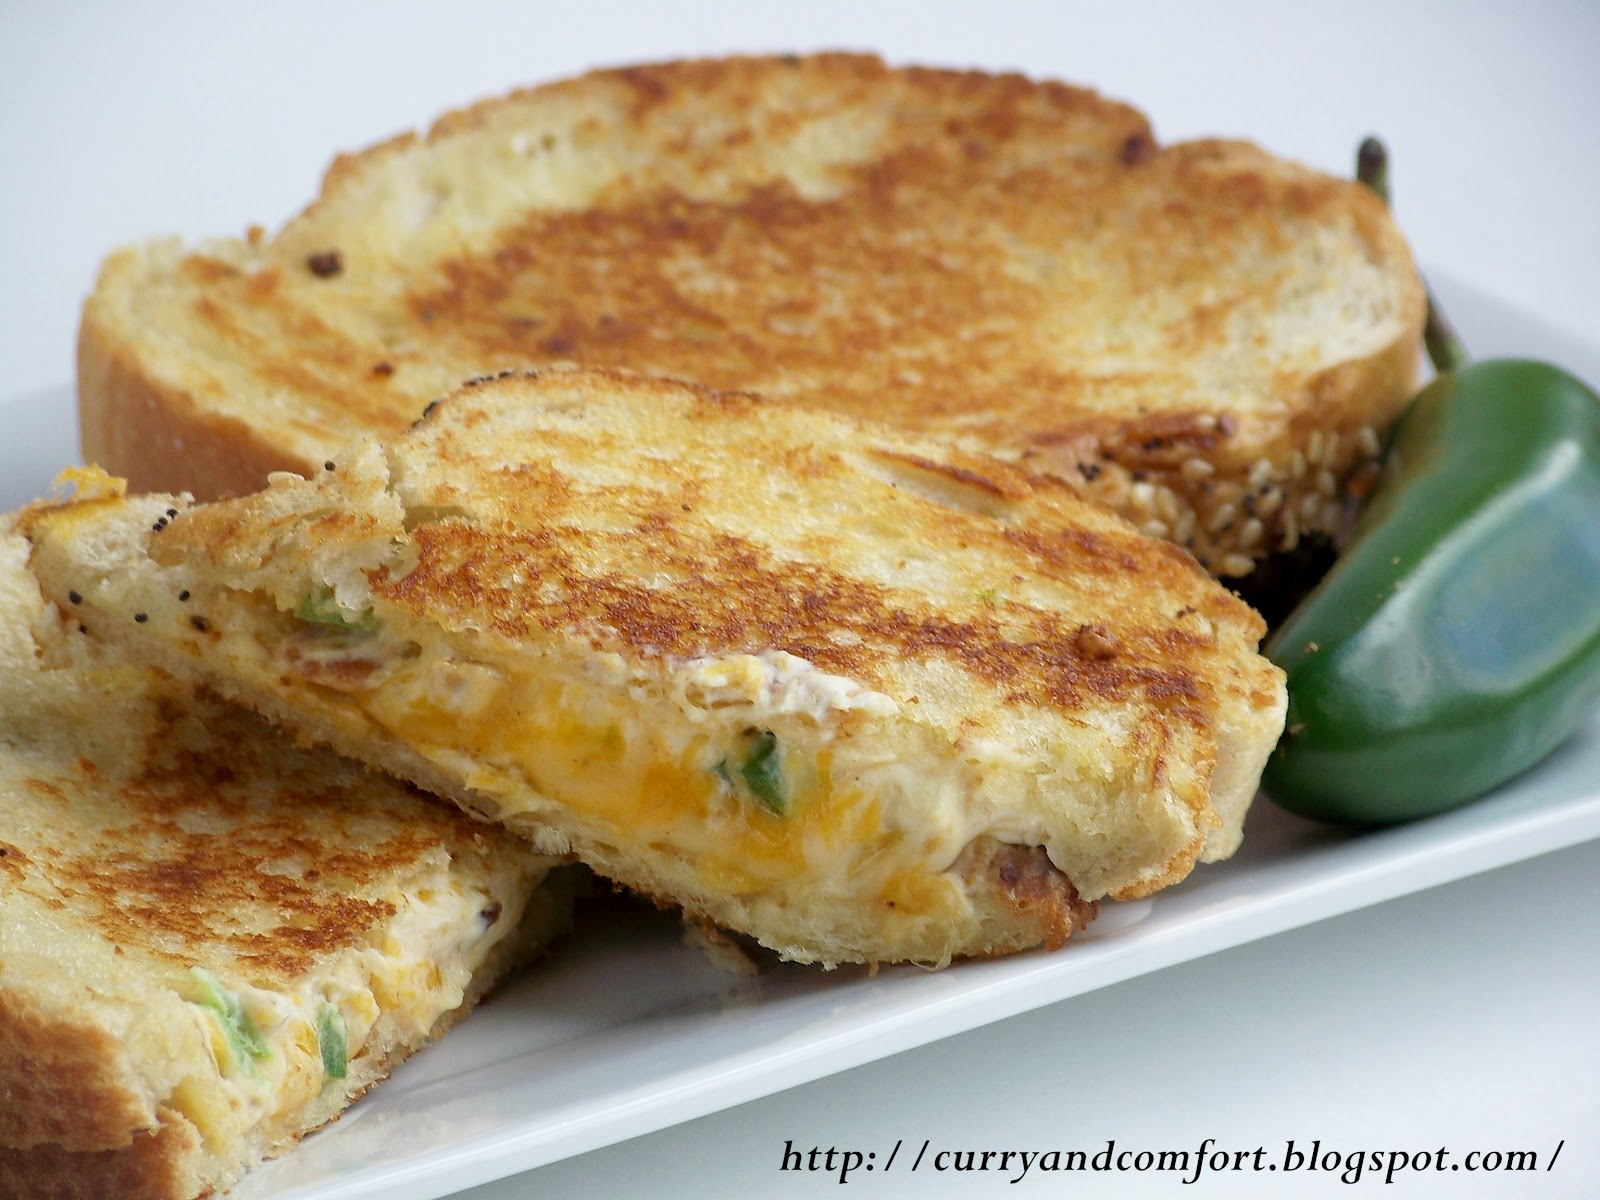 Jalapeno Popper Bacon Grilled Cheese